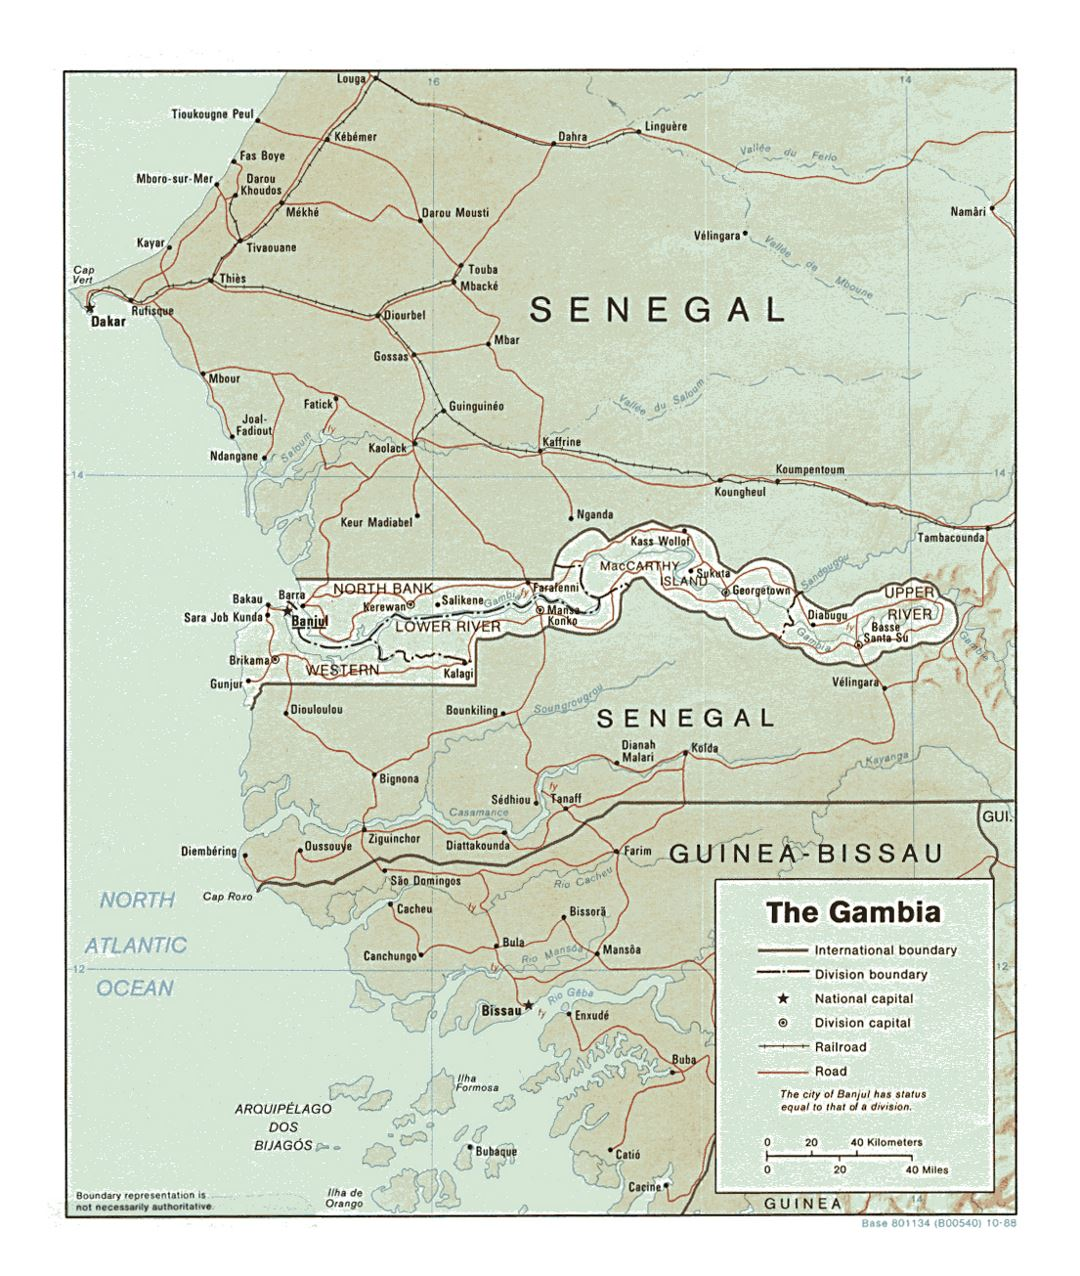 Detailed political and administrative map of Gambia with relief, roads, railroads and major cities - 1988